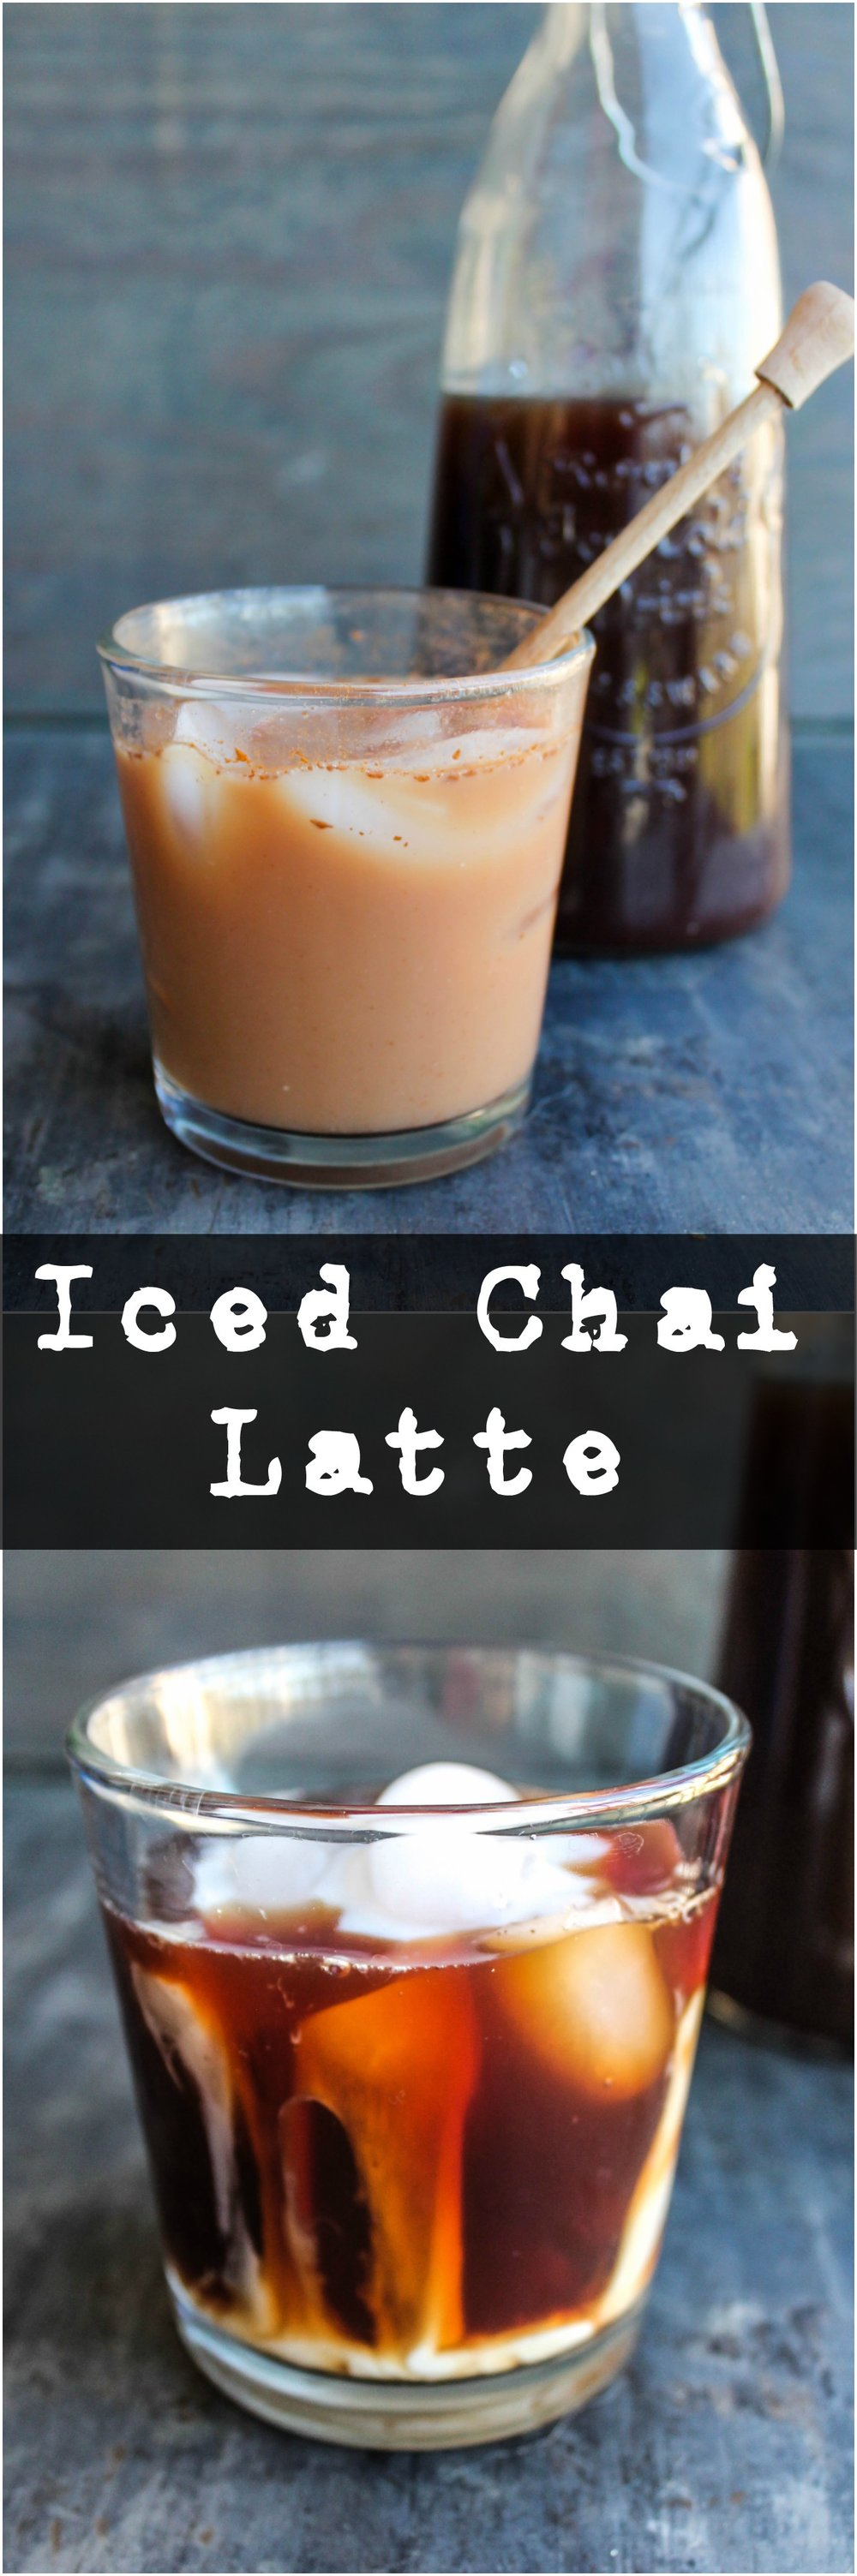 Enjoy Iced Chai Latte at the convenience of your own home. Feel free to customize it with the milk and sweetener of your choice!